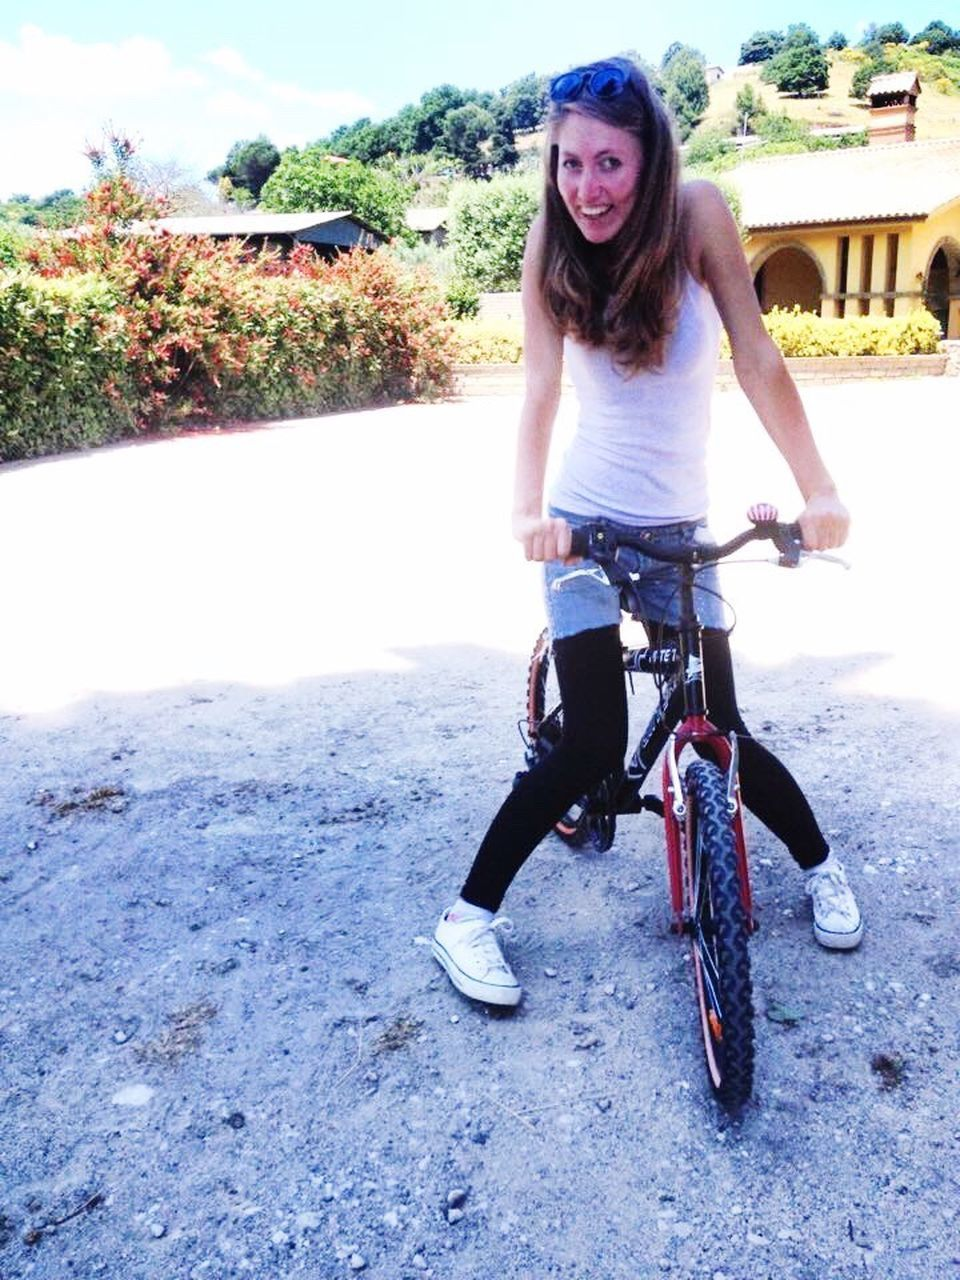 bicycle, looking at camera, front view, real people, smiling, portrait, day, outdoors, leisure activity, happiness, full length, one person, transportation, lifestyles, road, young adult, young women, sky